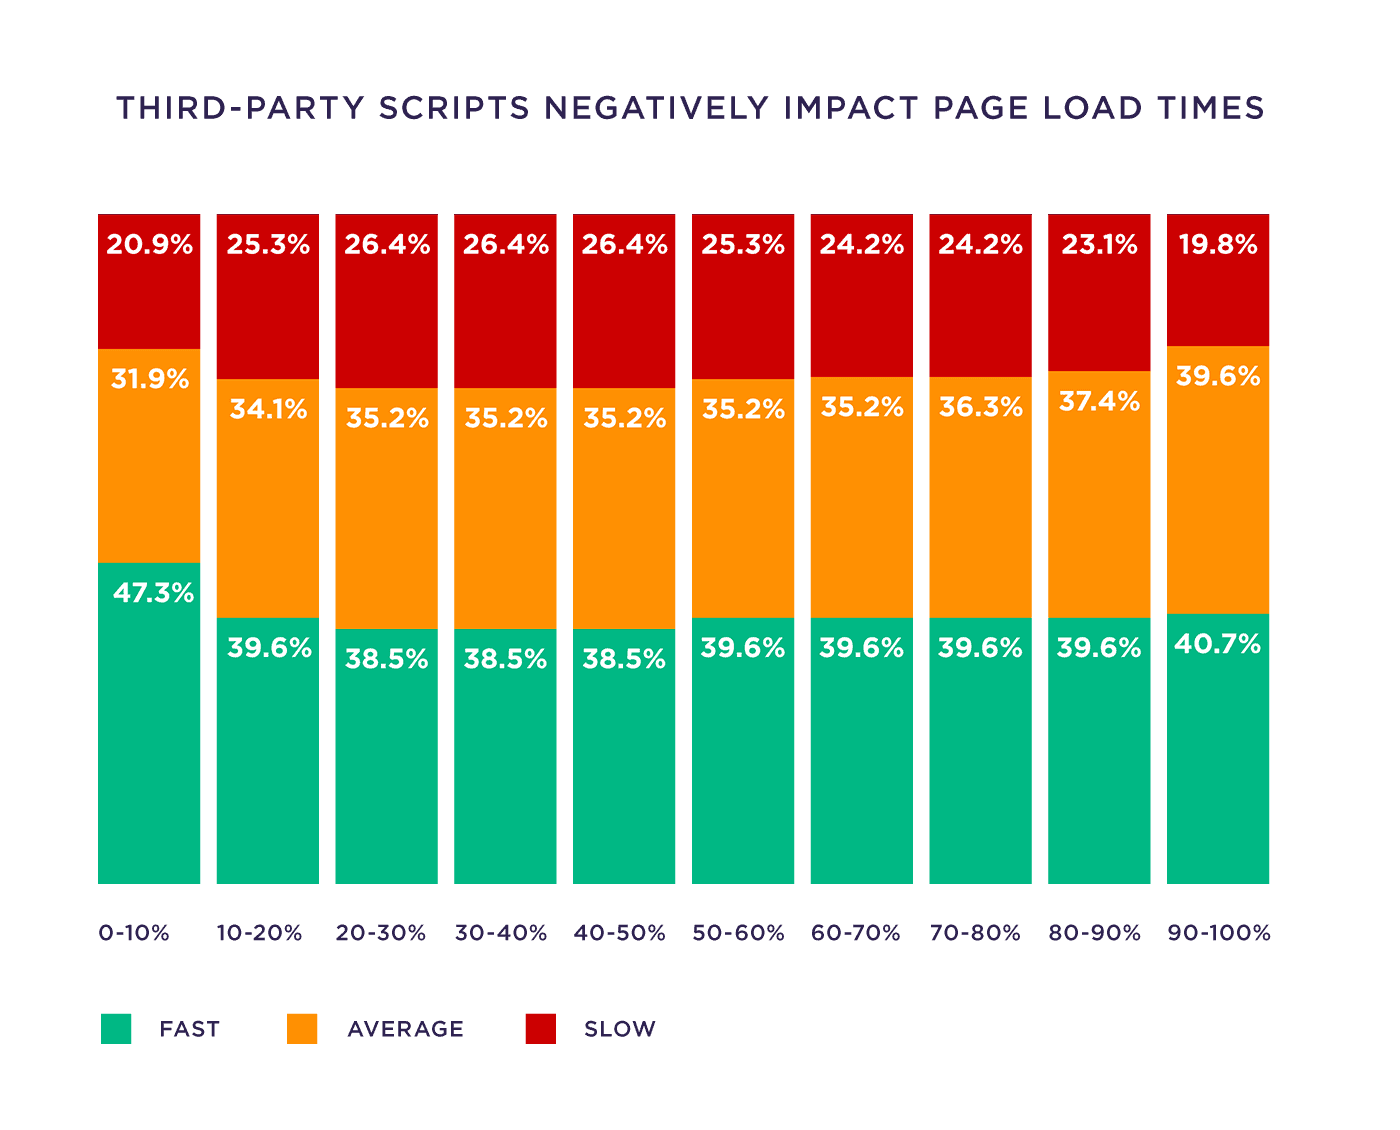 Third-party scripts negatively impact page load times